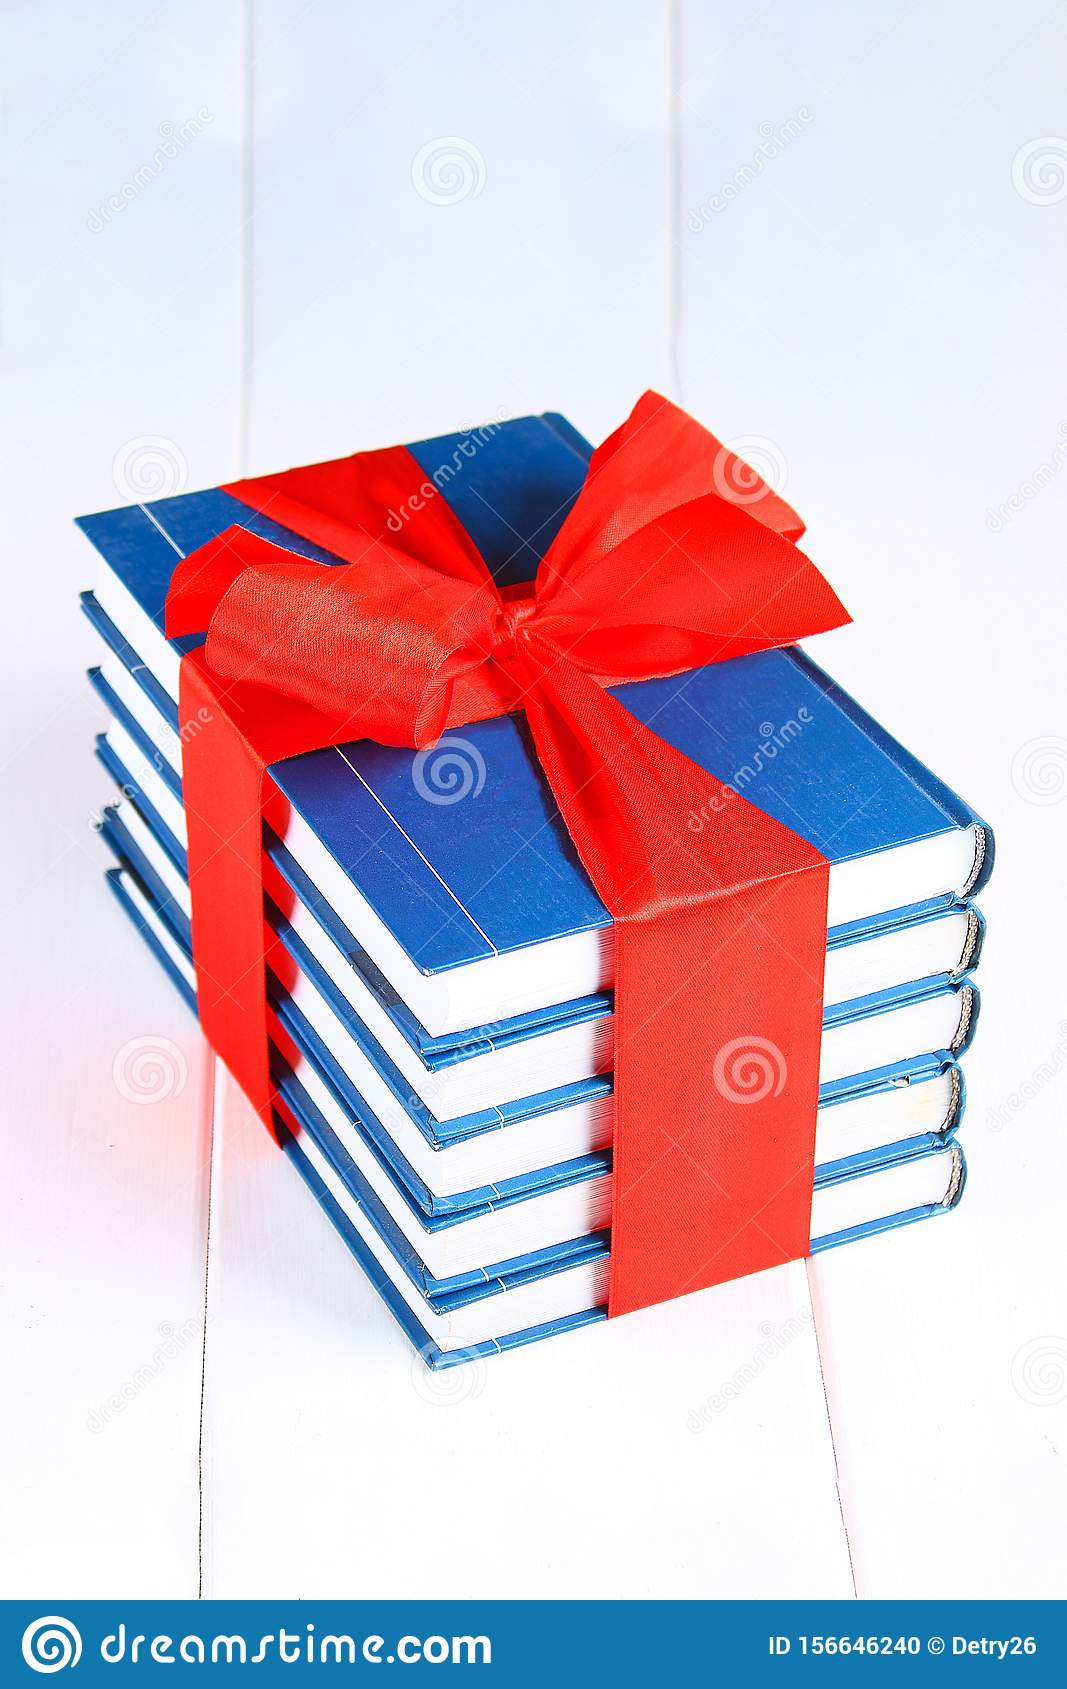 A pile of books tied with a red ribbon on a white wooden table